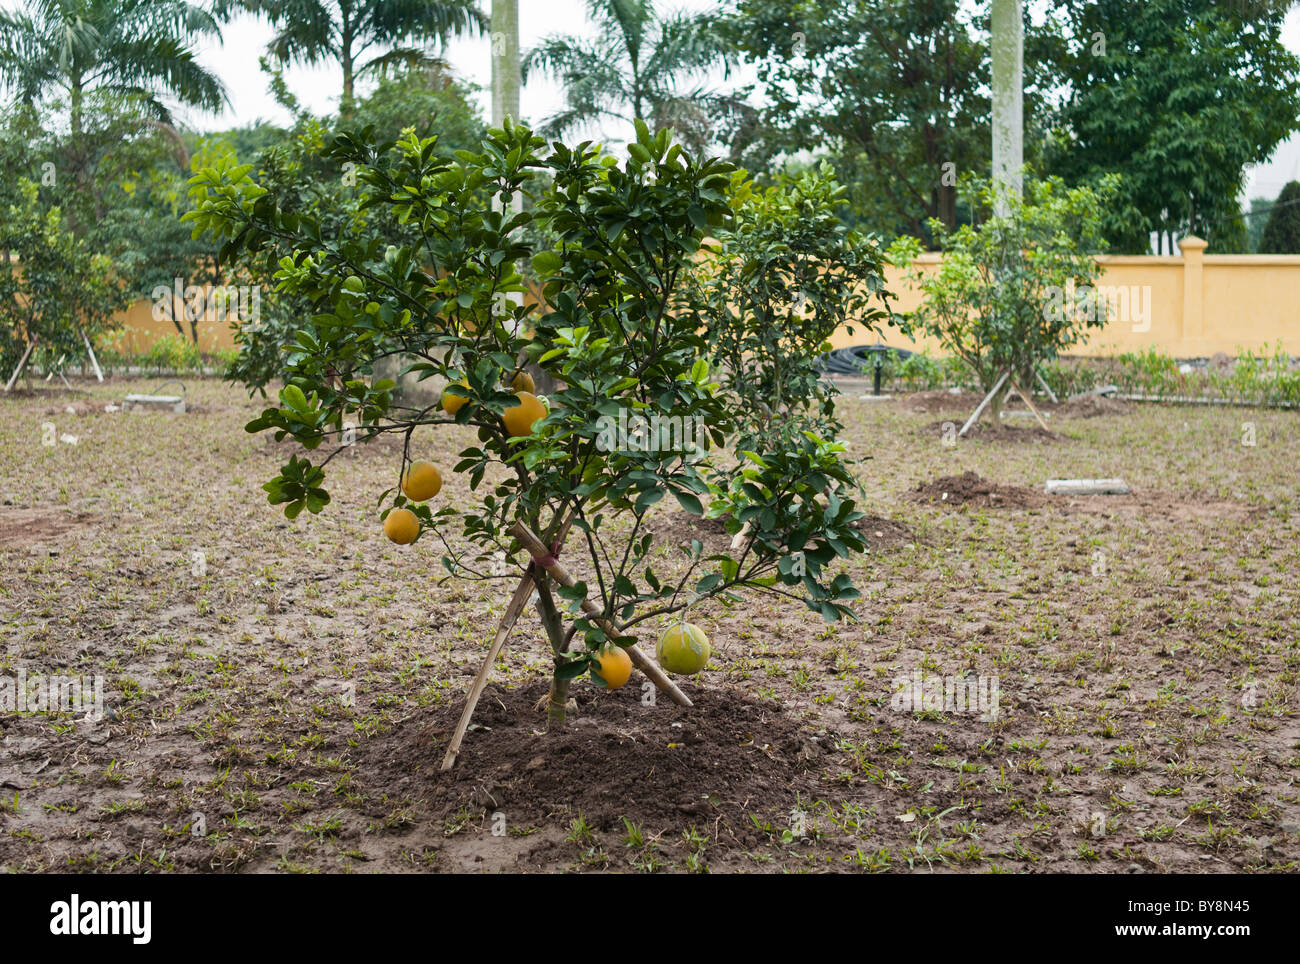 pomelo tree stockfotos pomelo tree bilder alamy. Black Bedroom Furniture Sets. Home Design Ideas